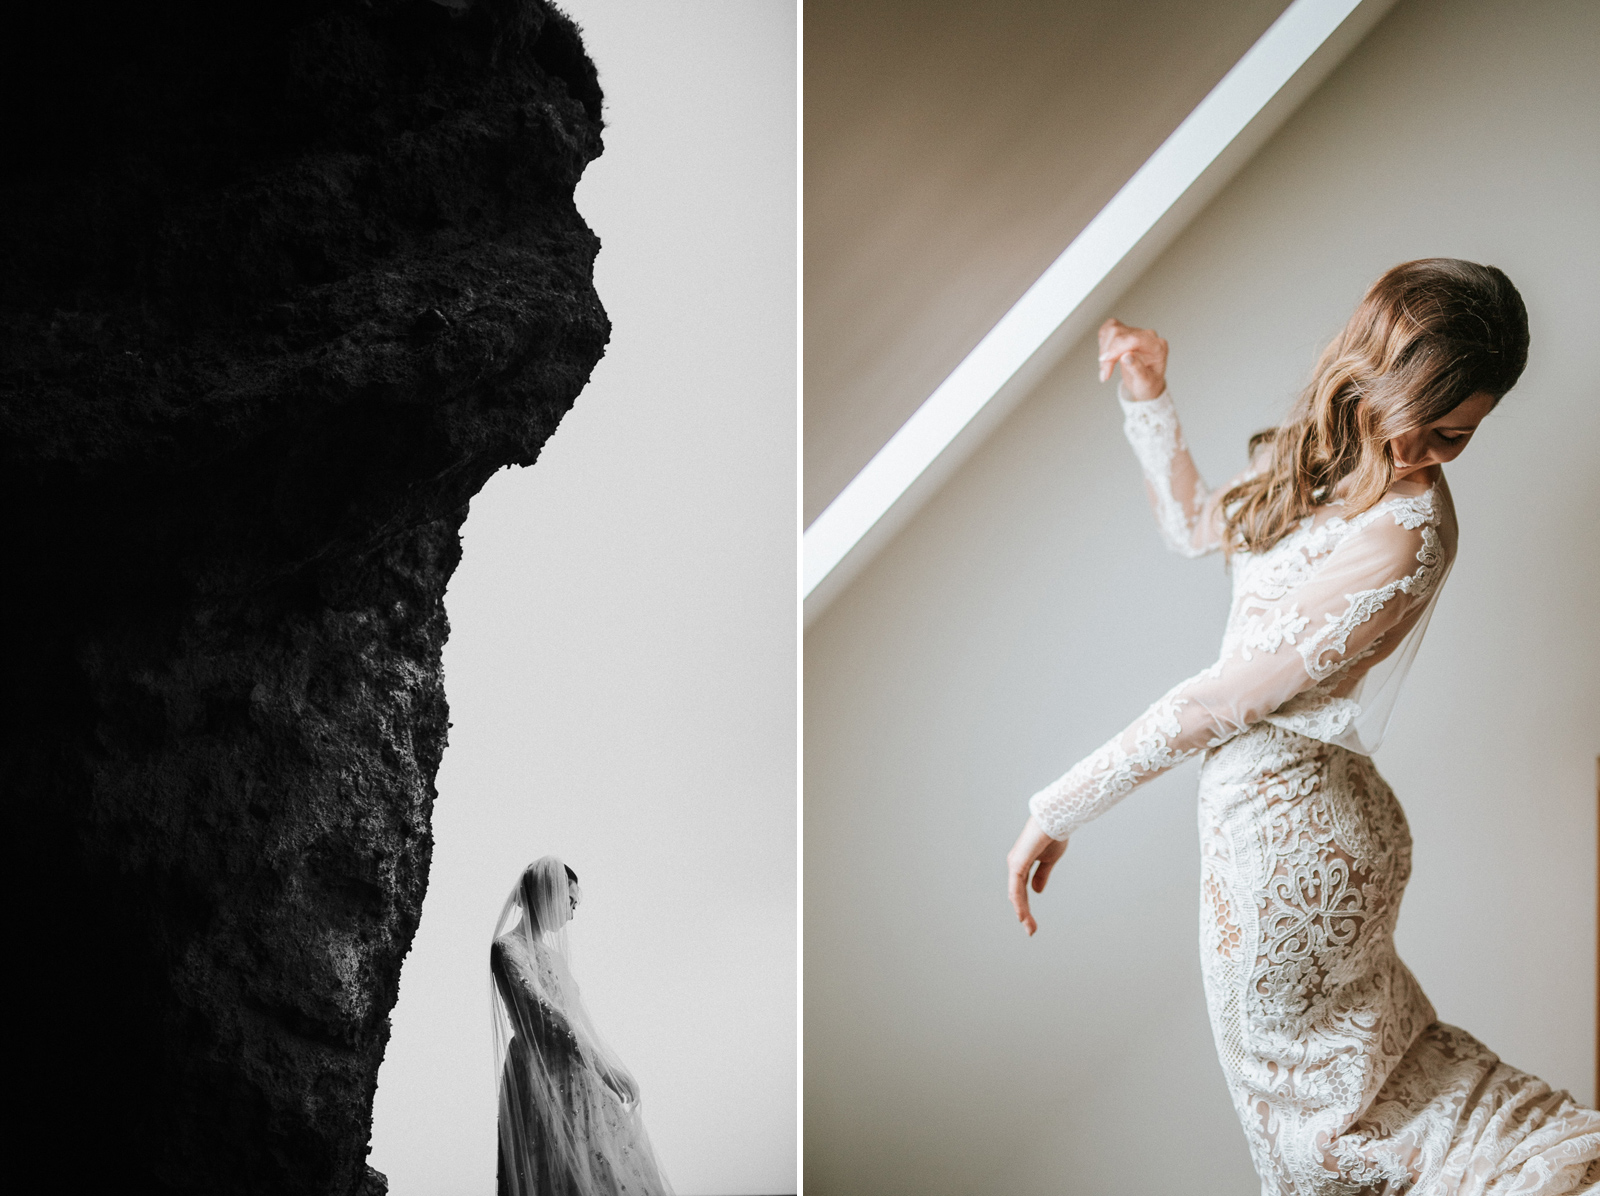 M&J Studios Best Wedding Photos 2017 by Mait Jüriado